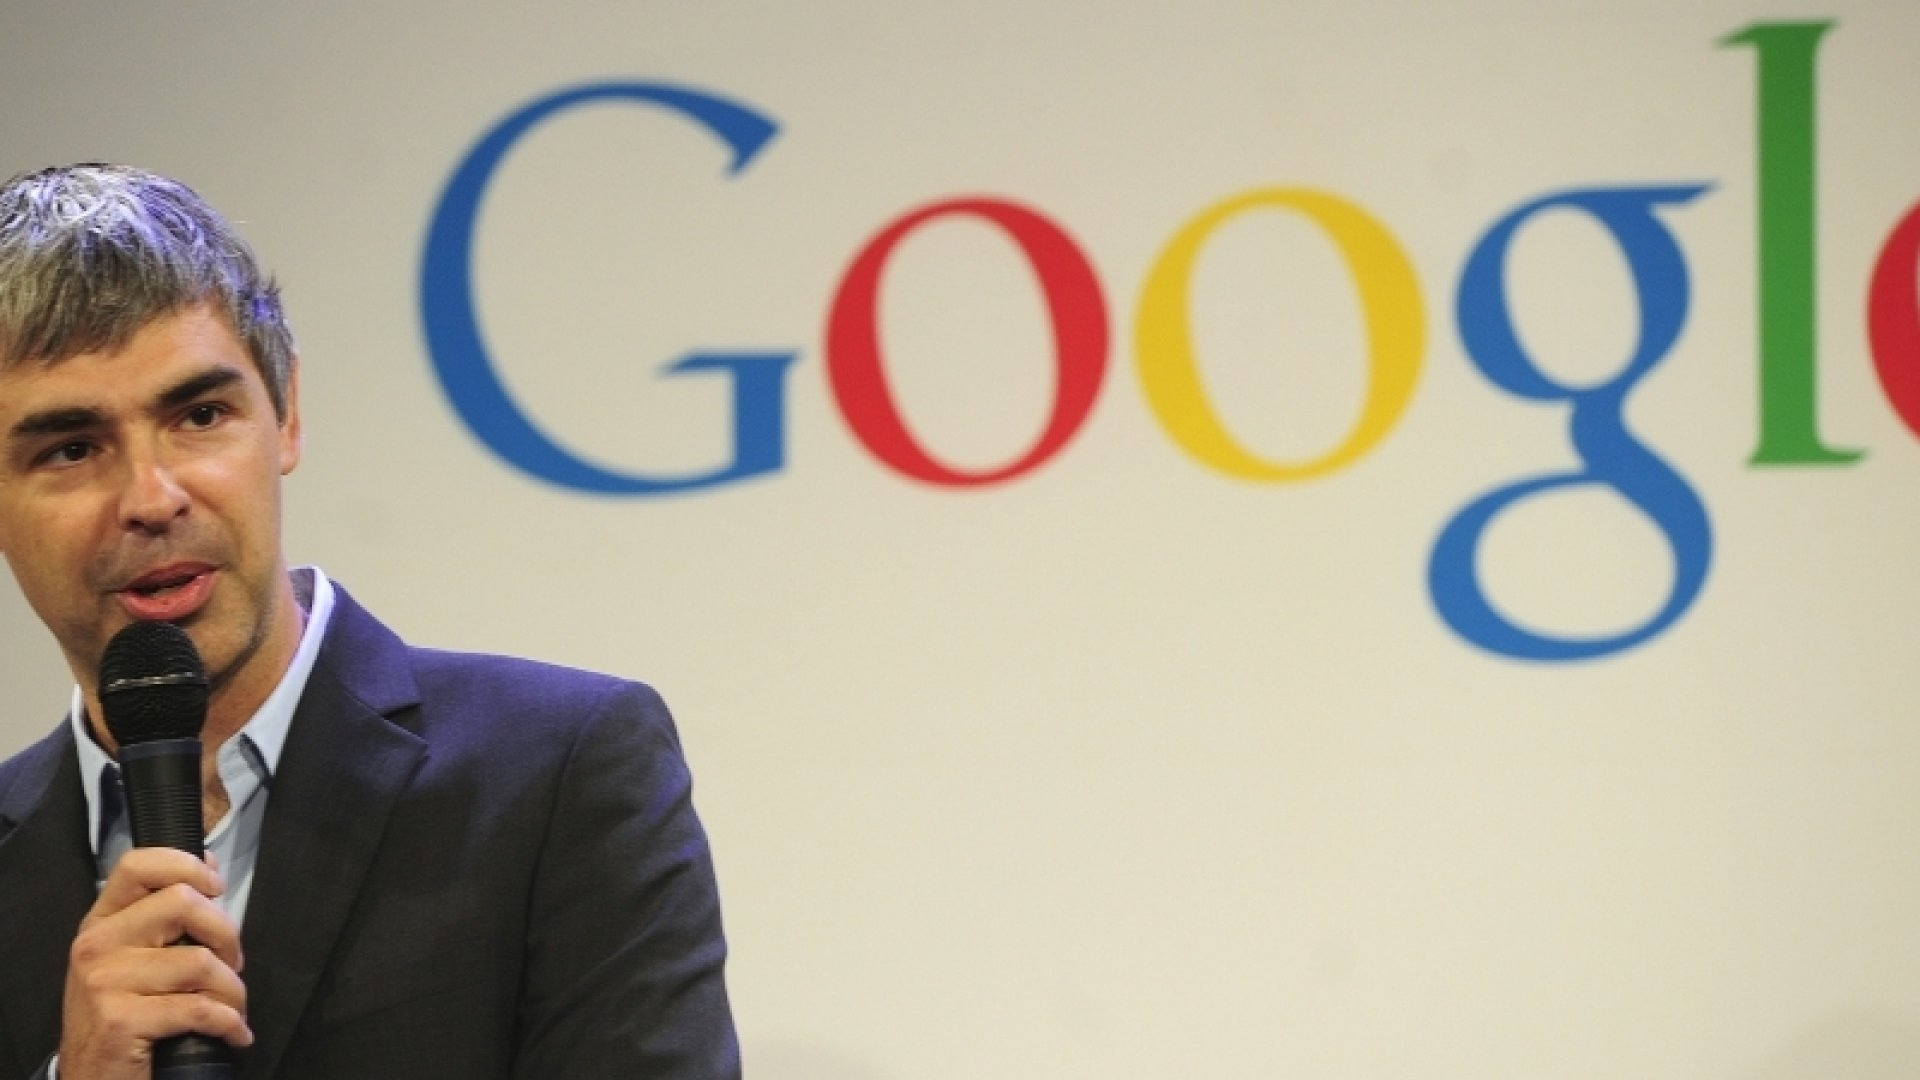 How To Make Sure You're On Larry Page's 2015 Wish List